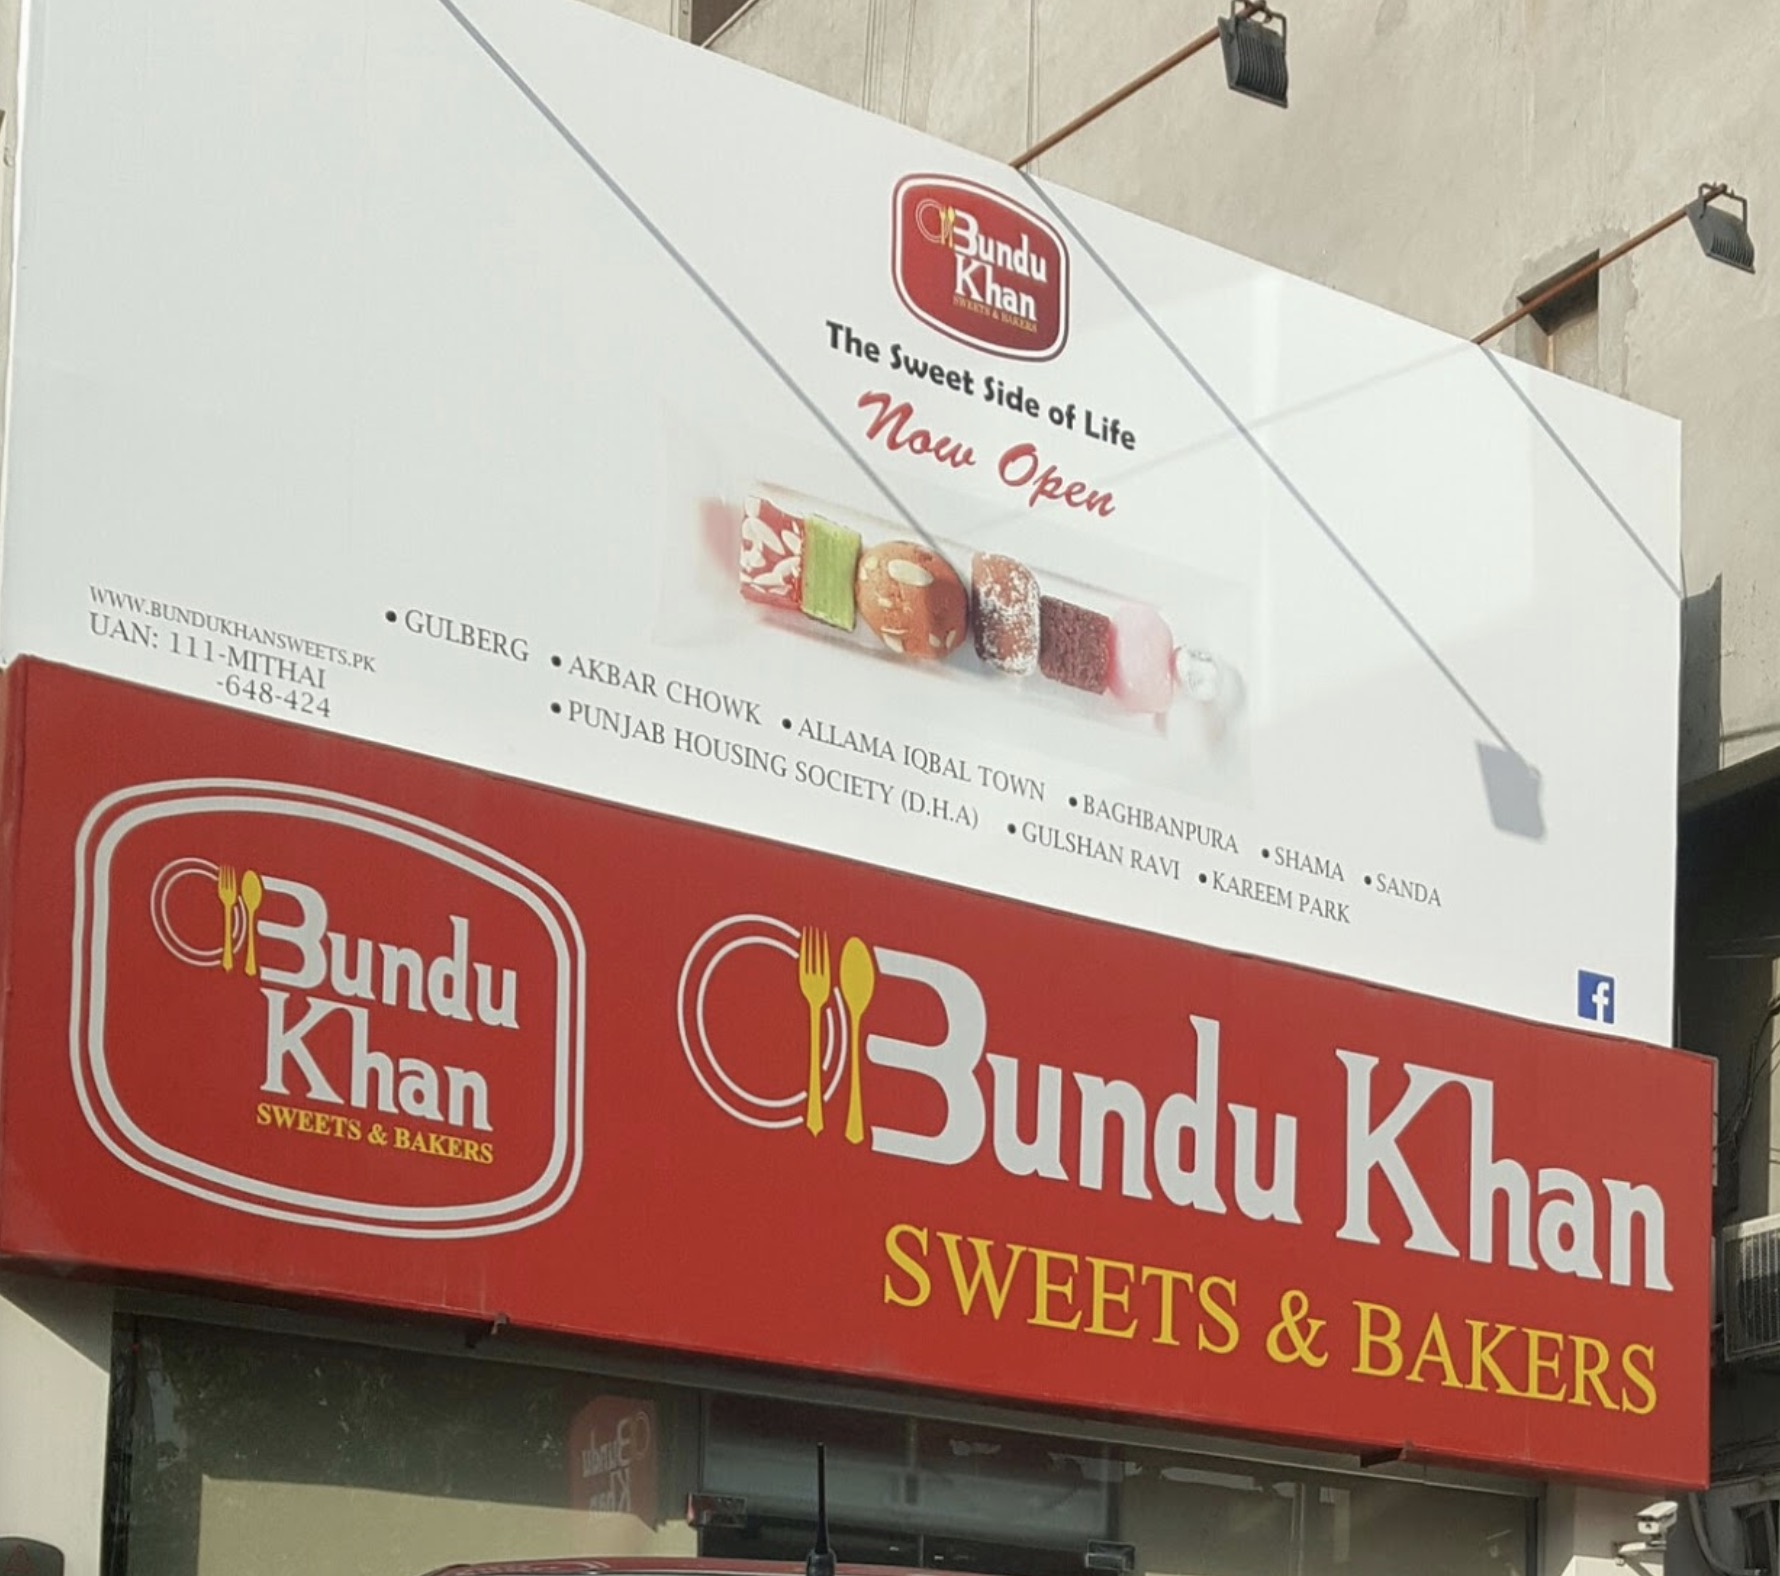 Bundu Khan Sweets & Bakers (Iqbal Town)